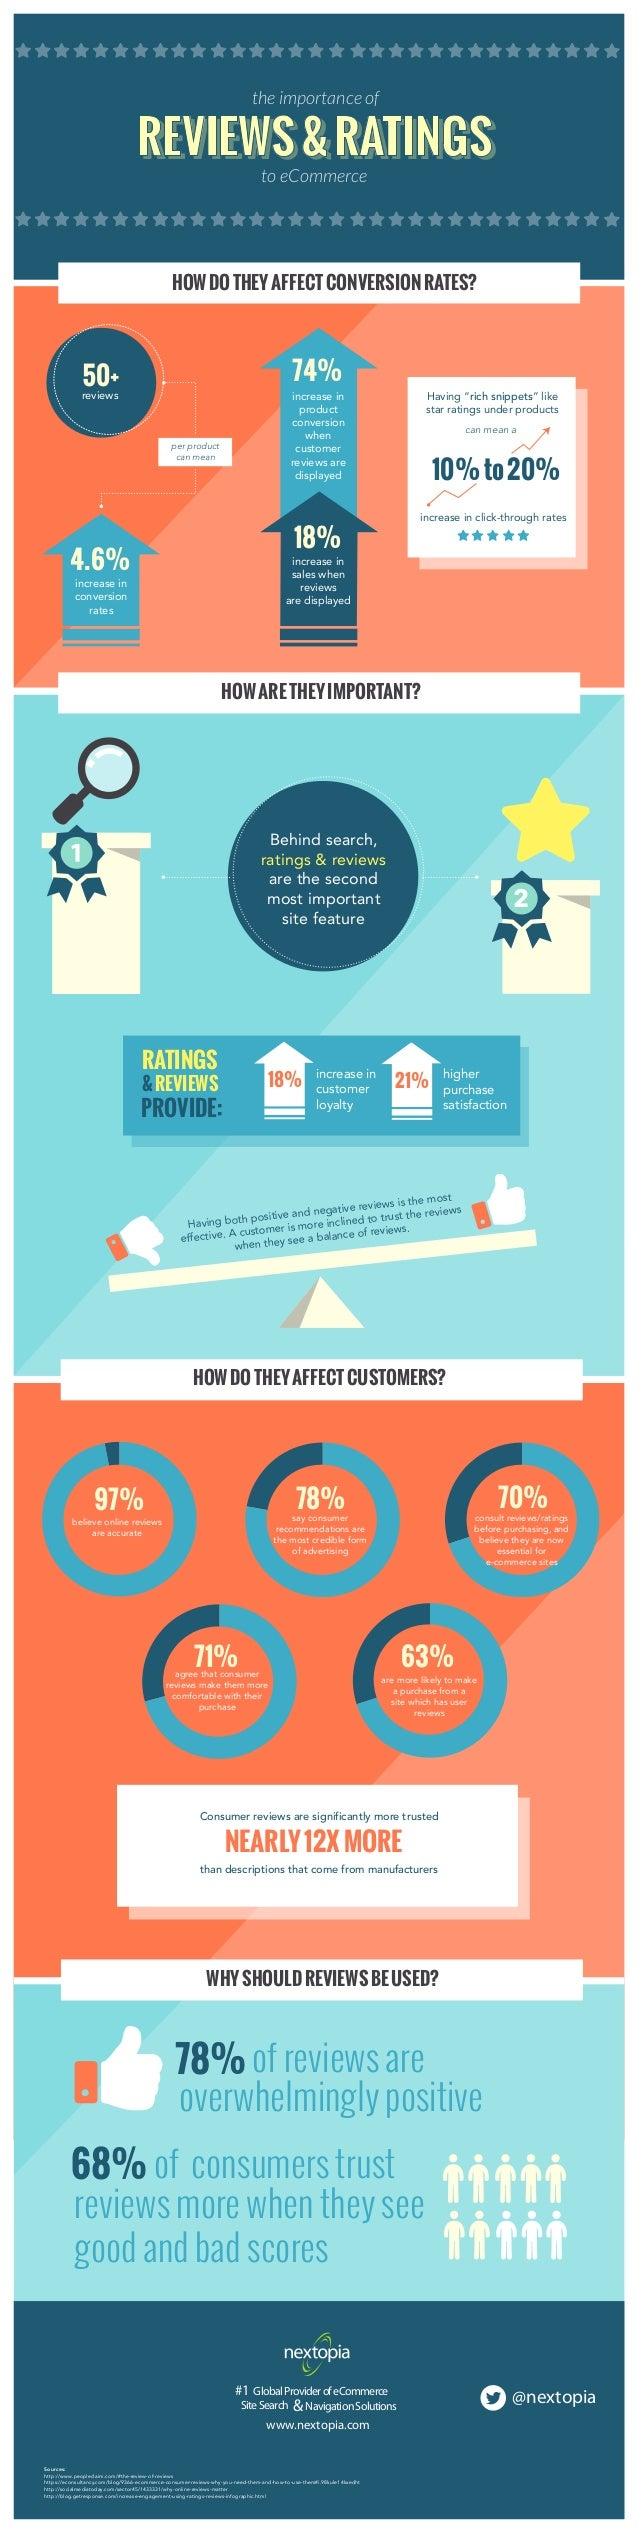 Customer Reviews & Ratings Infographic